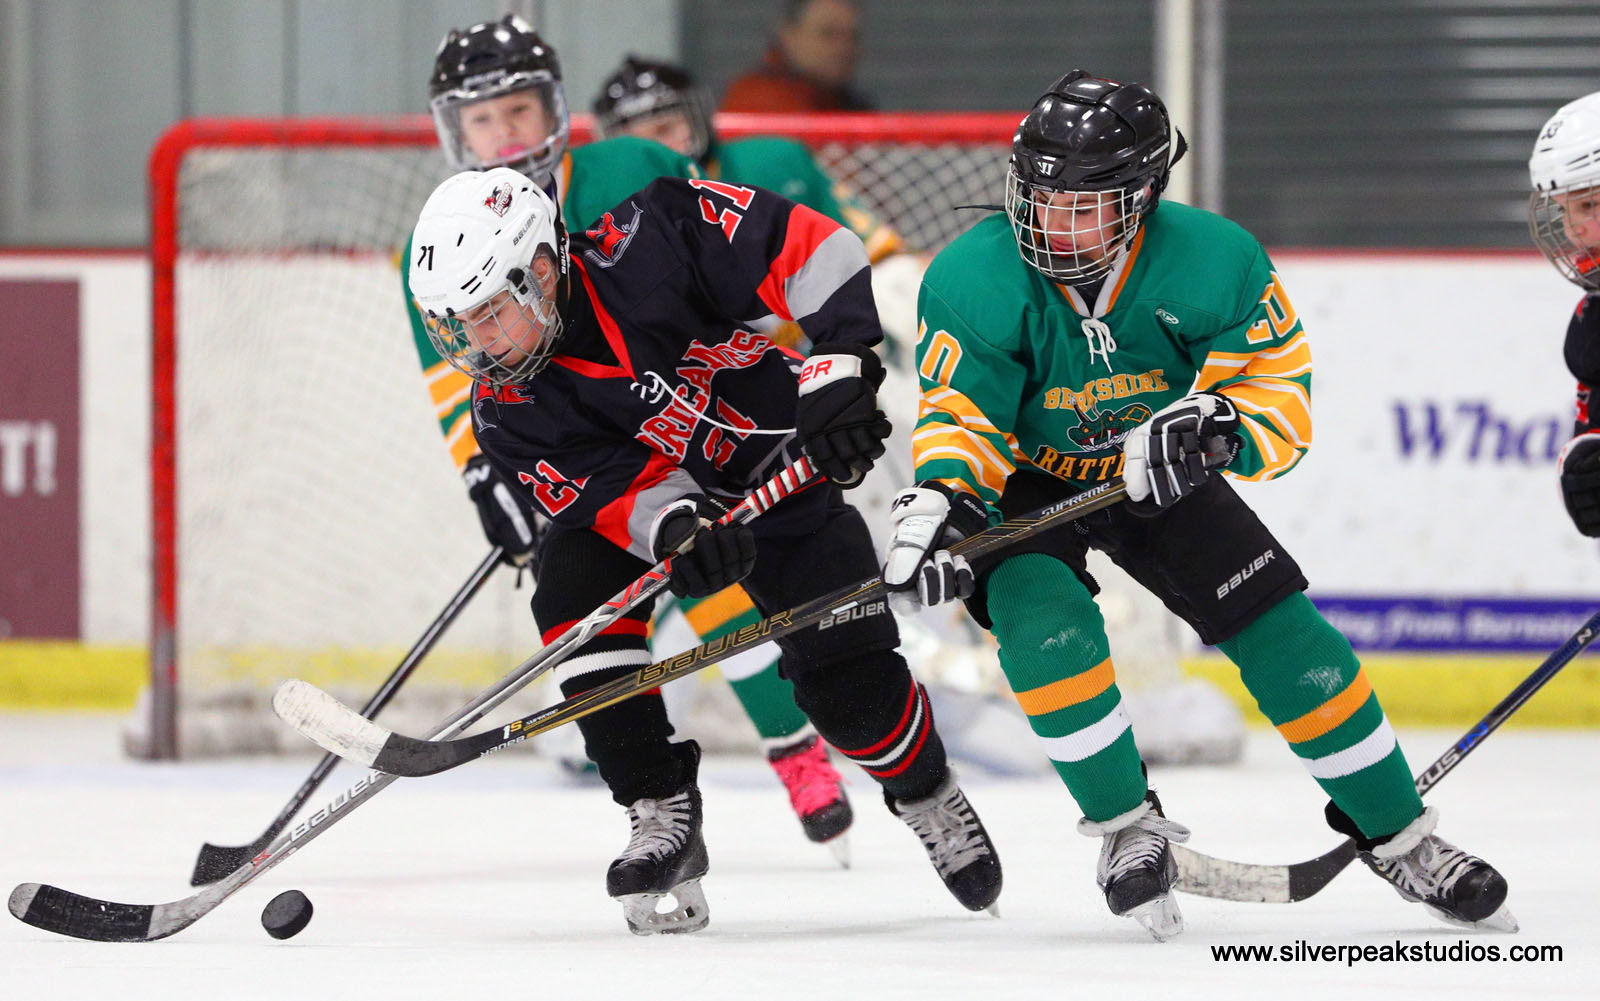 SilverPeak Studios Berkshire Rattlers Hockey Action Photo 12